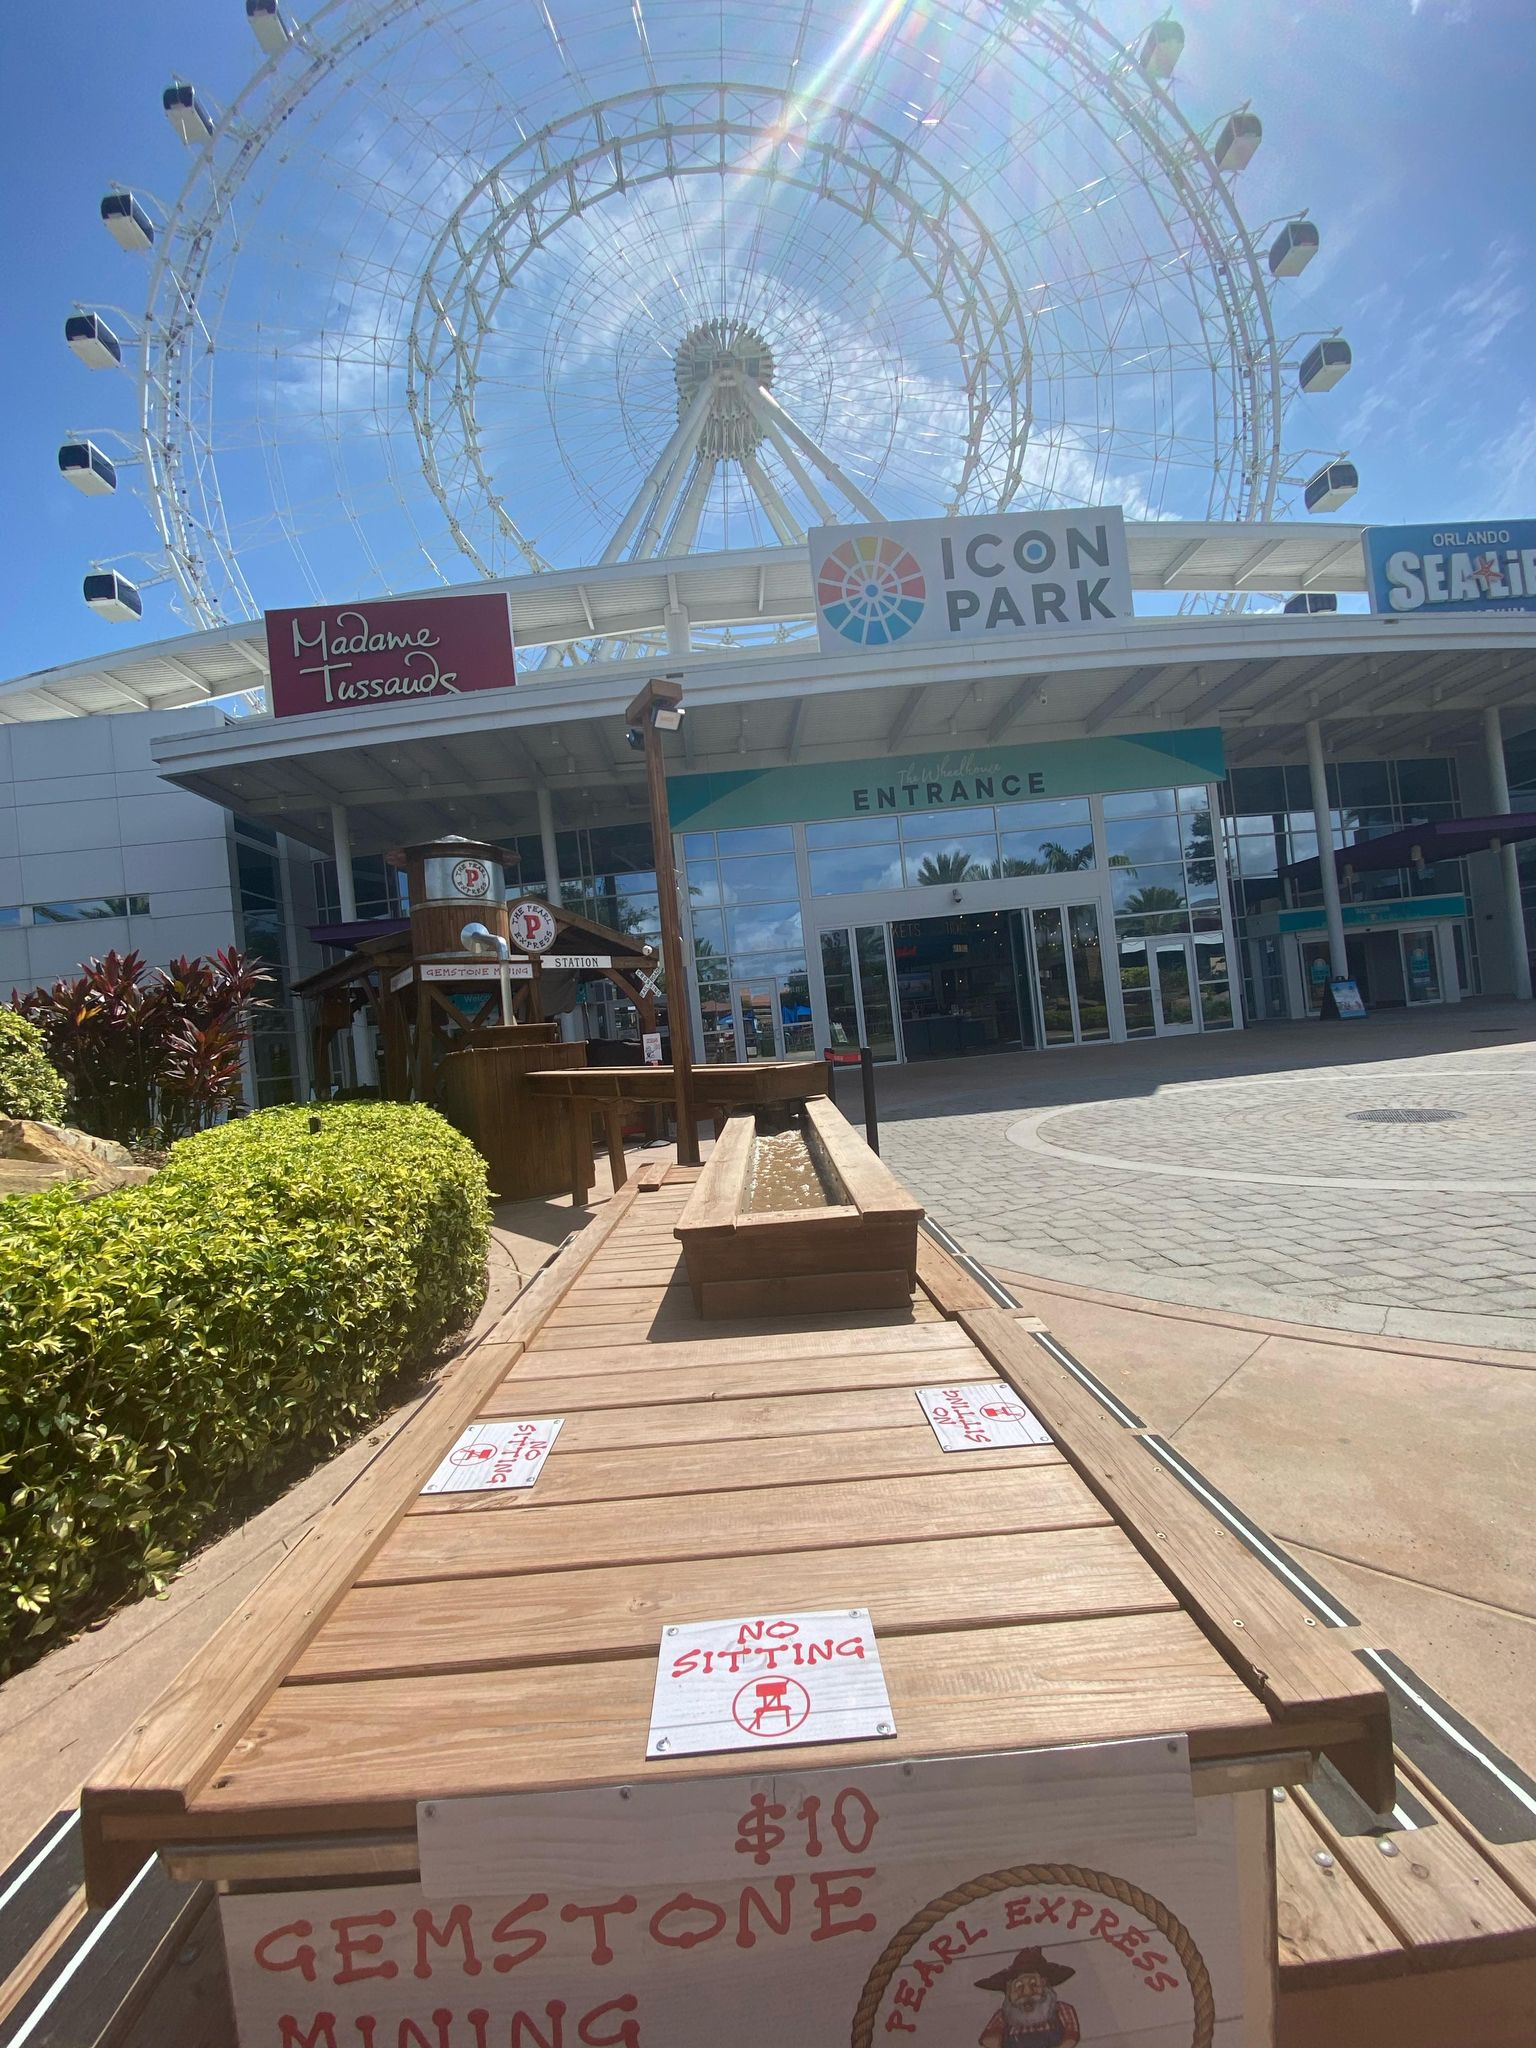 ICON Park offers Labor Day deal for kids 1